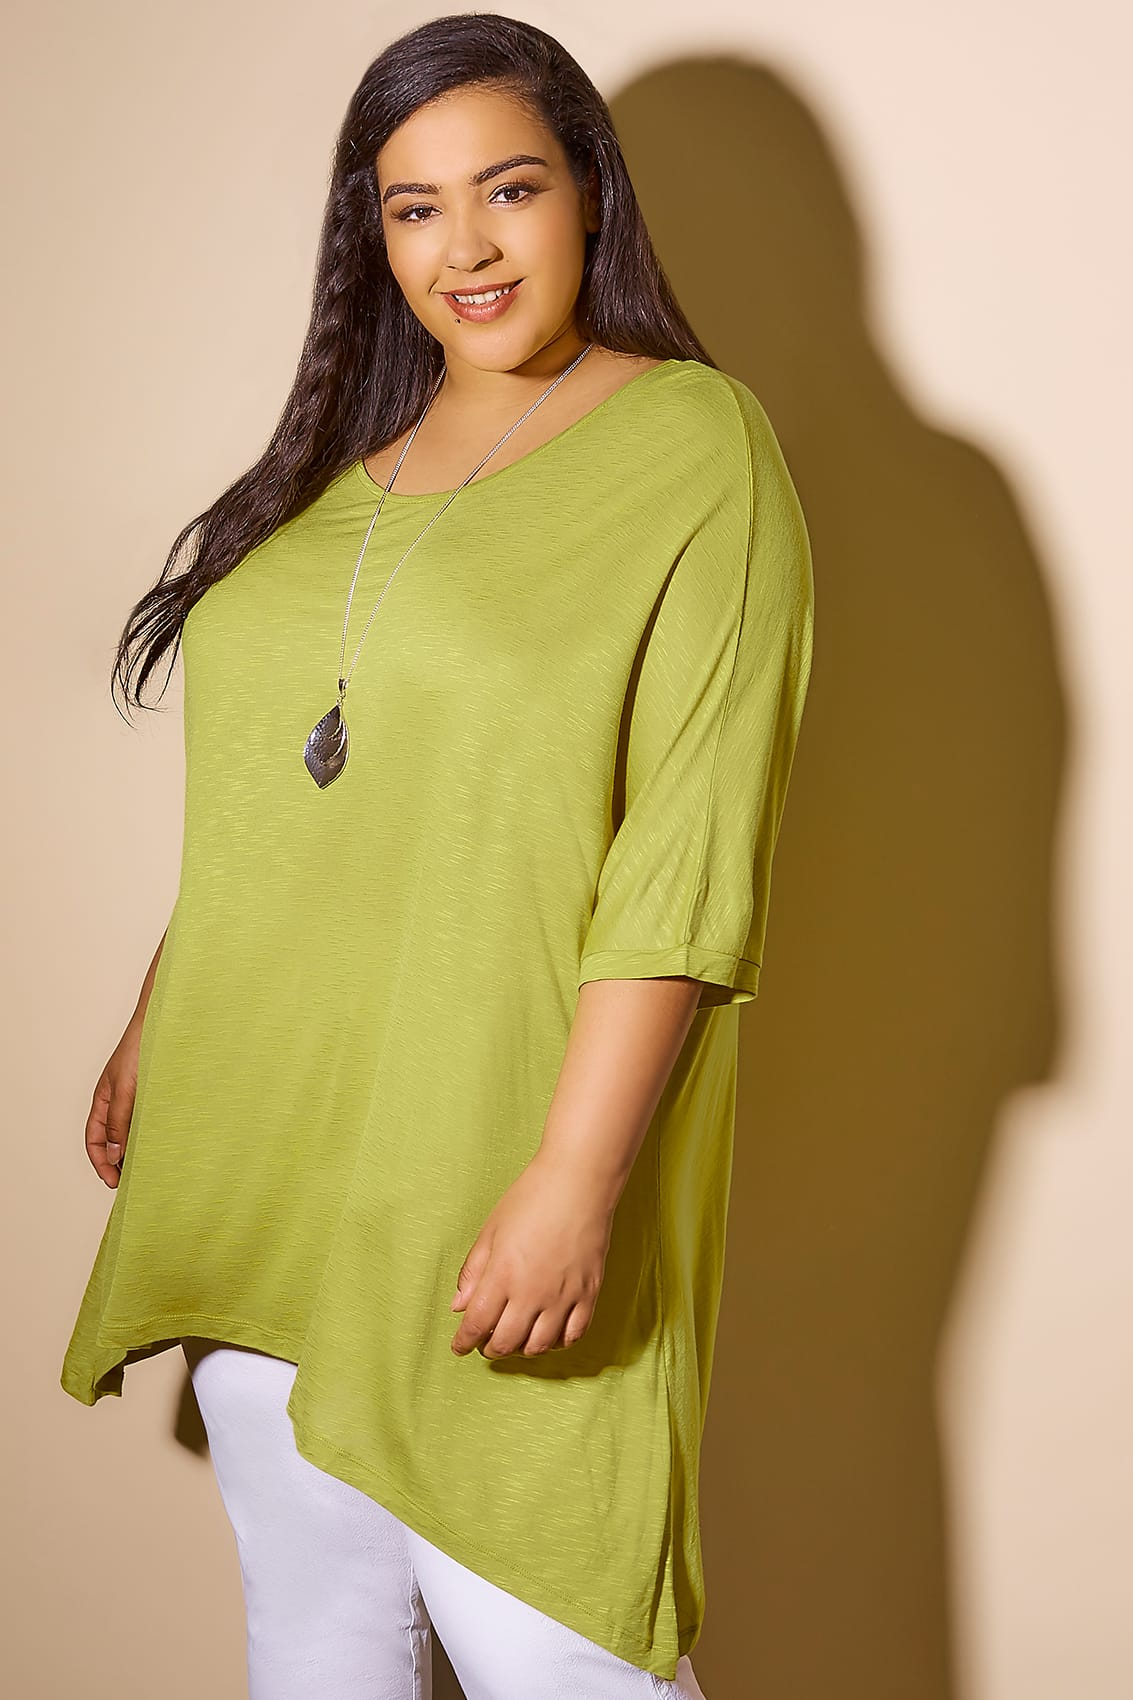 Chartreuse Green Oversized Soft Textured Jersey Top